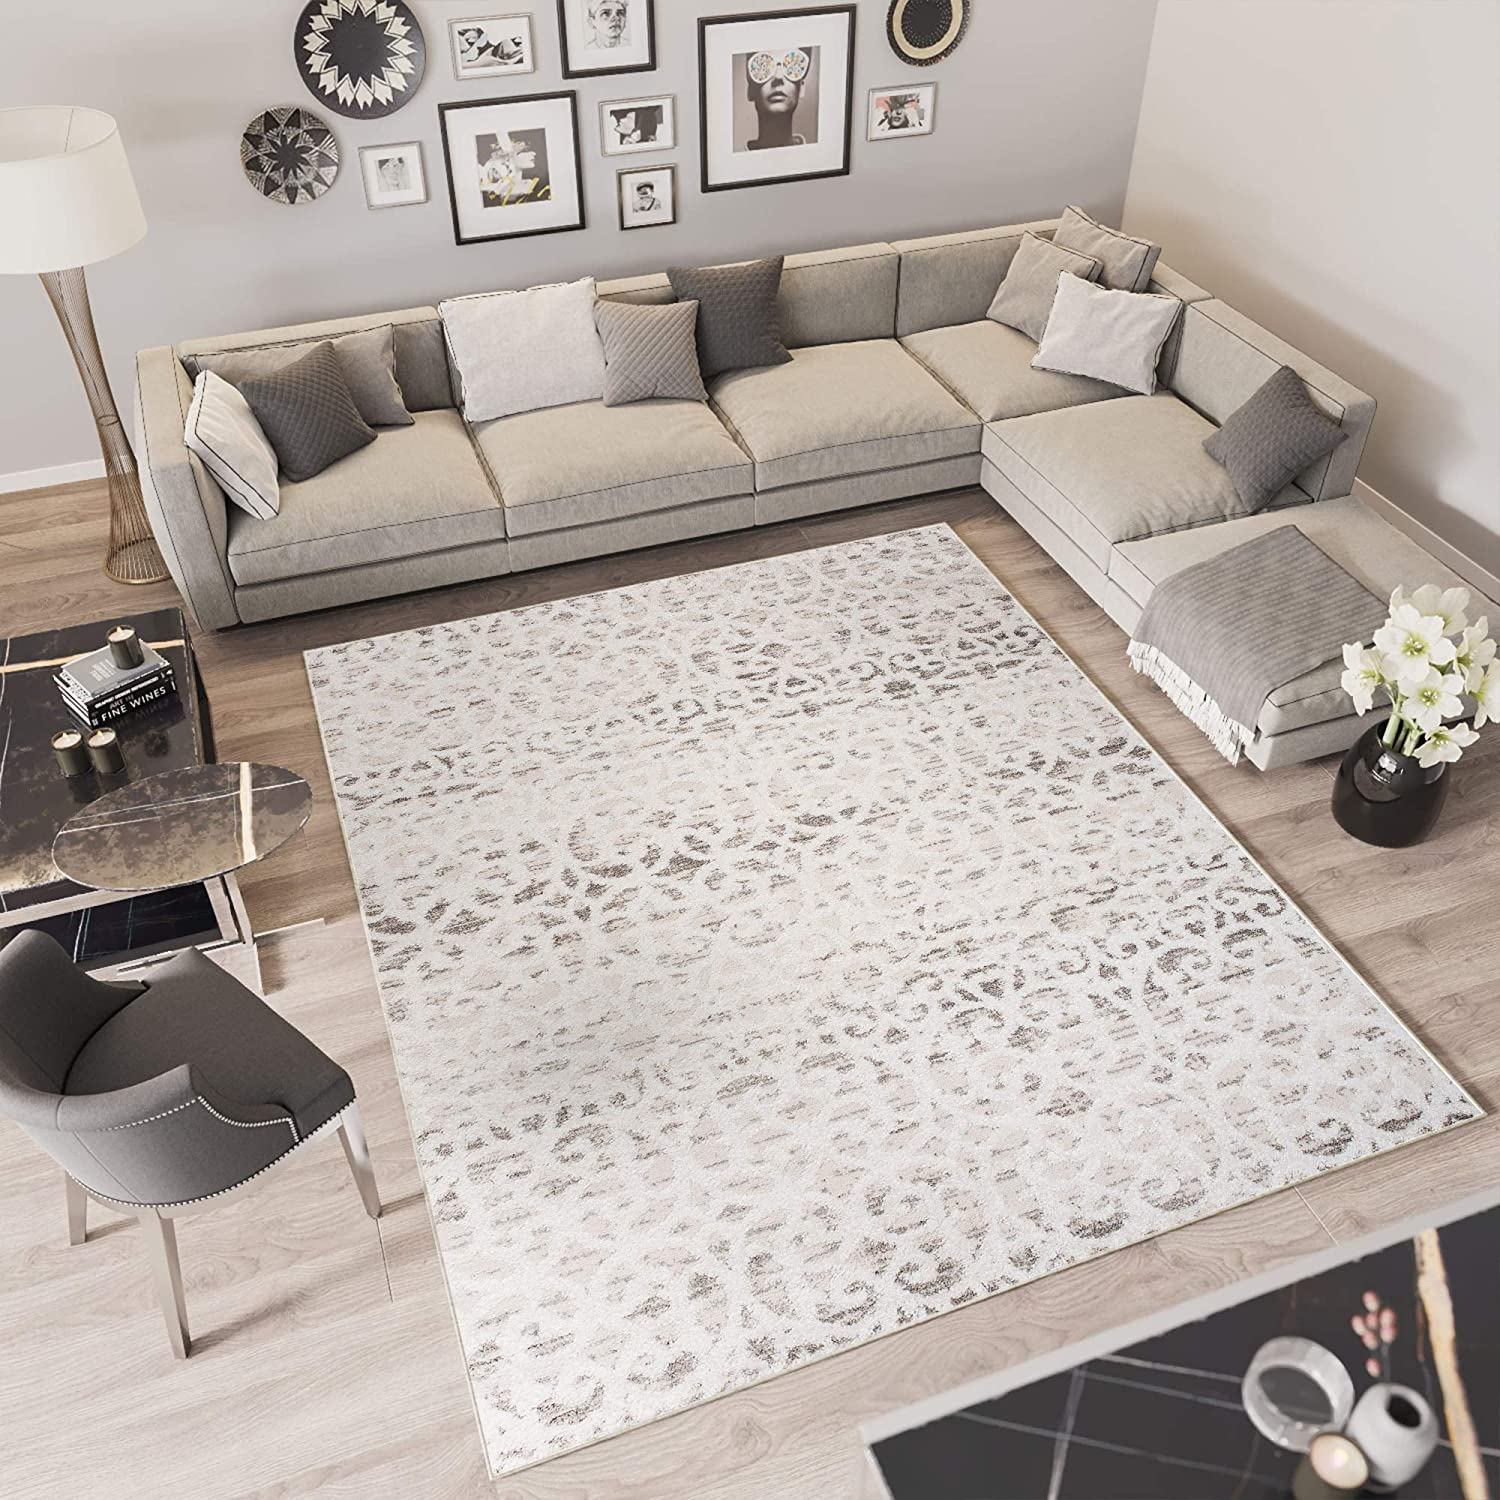 Tapiso Troya Rug Short Pile Modern Geometric Ethnic Moroccan Design Cream Living Room Bedroom Mottled Oekotex Polyester Cream Brown 200 X 300 Cm Amazon Co Uk Kitchen Home